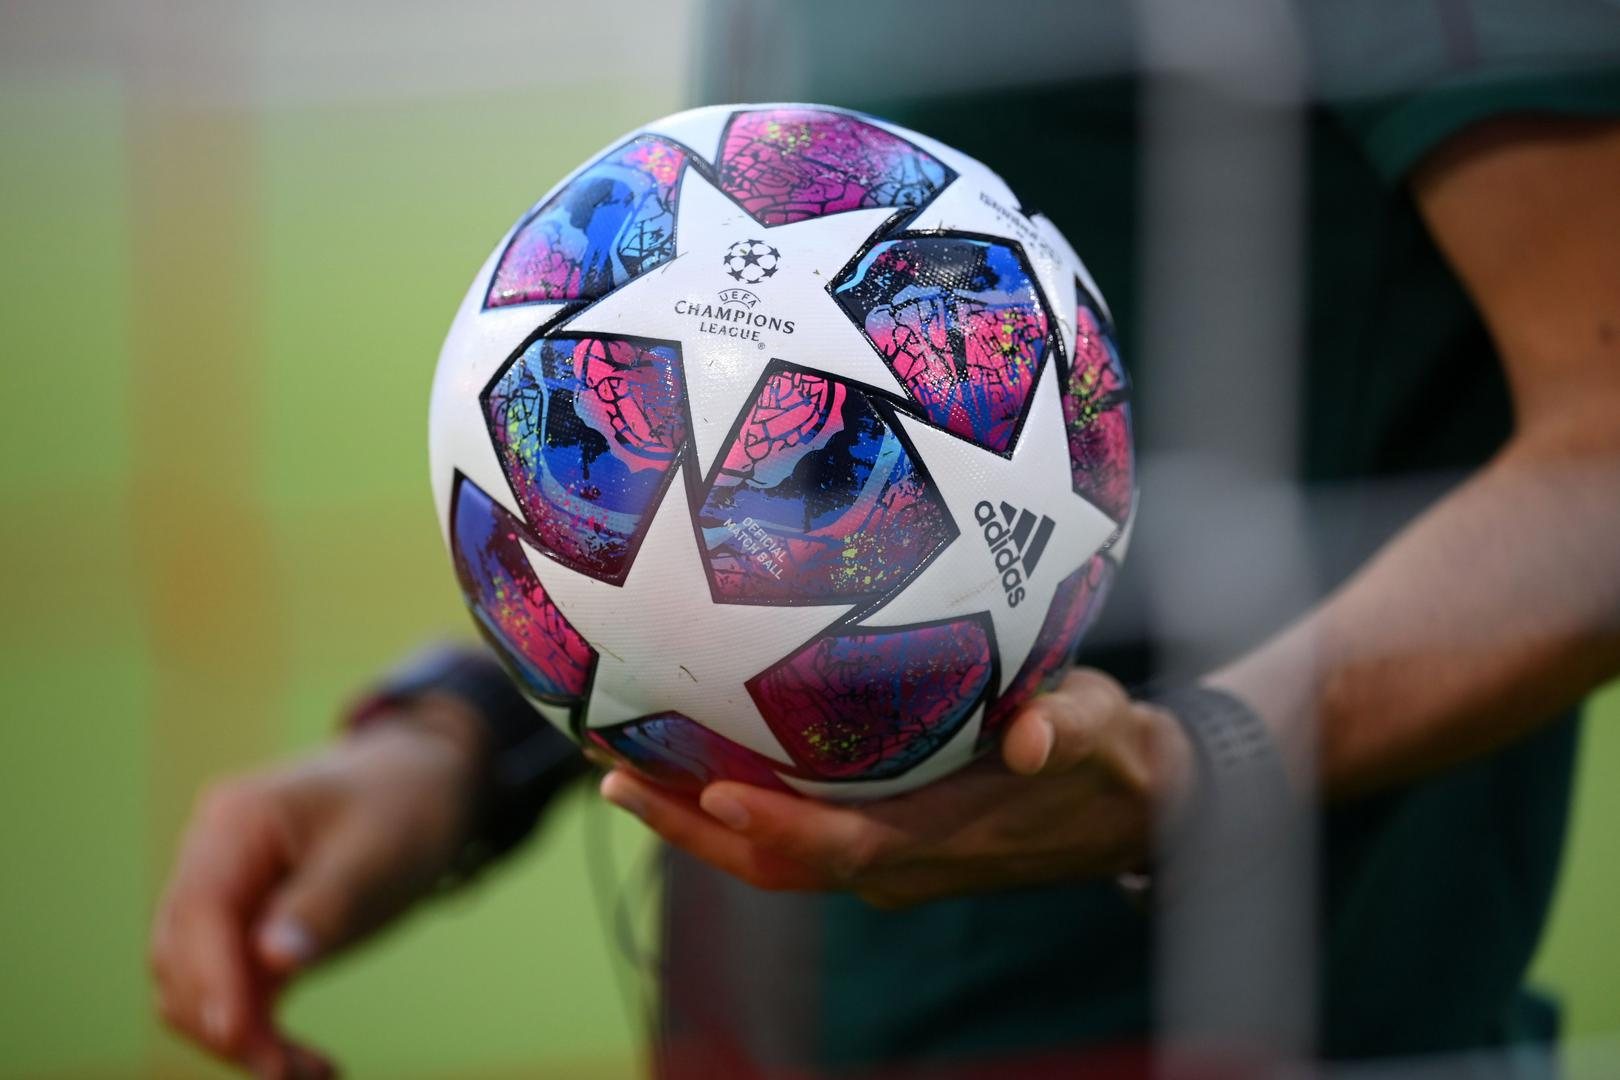 Champions League ball,